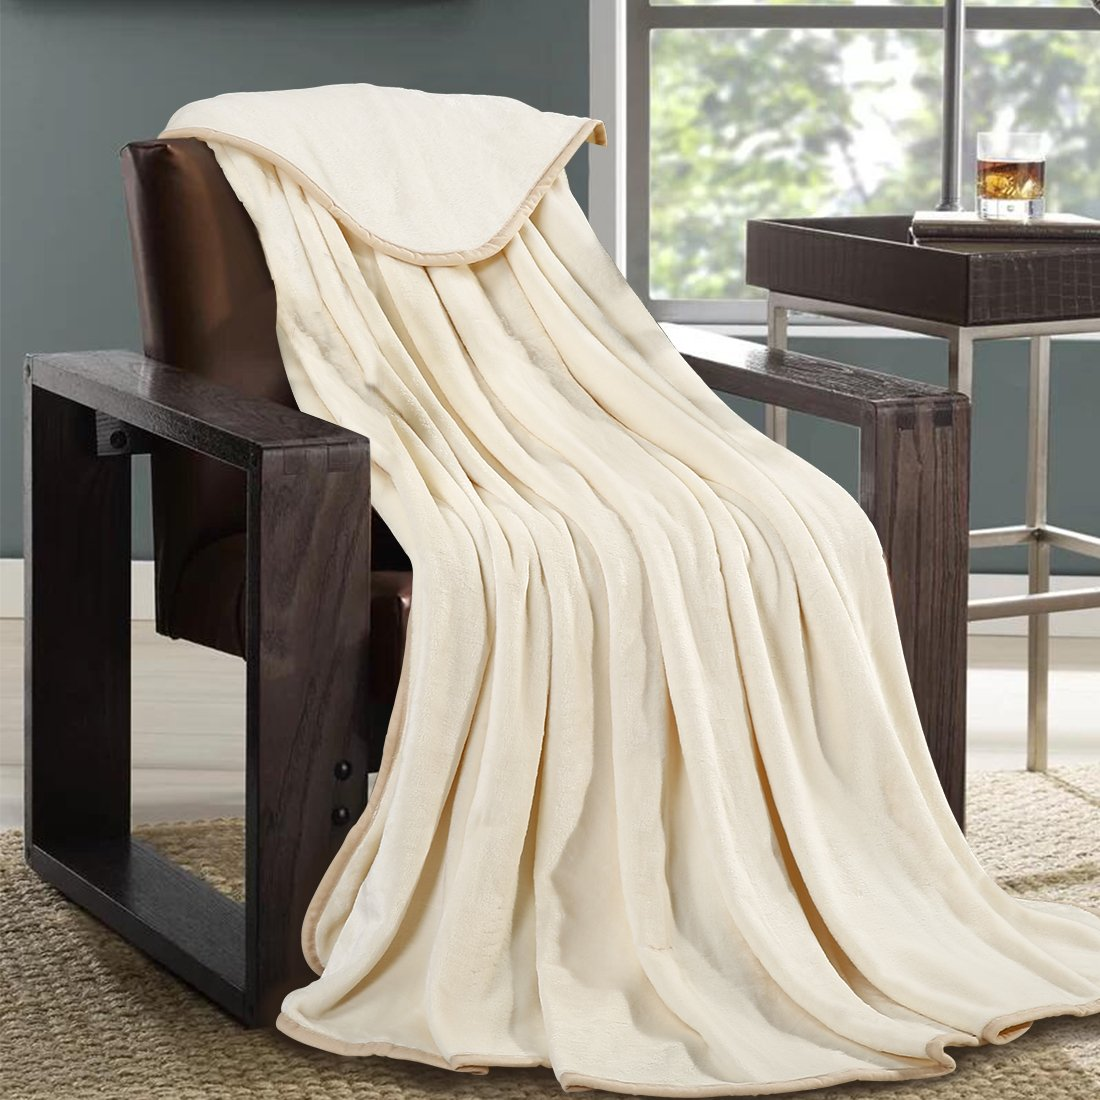 Queen, Ivory MAEVIS Luxury Fleece Blanket Super Soft Cozy Lightweight Plush Fur Warm All Season Throw for Bed and Couch